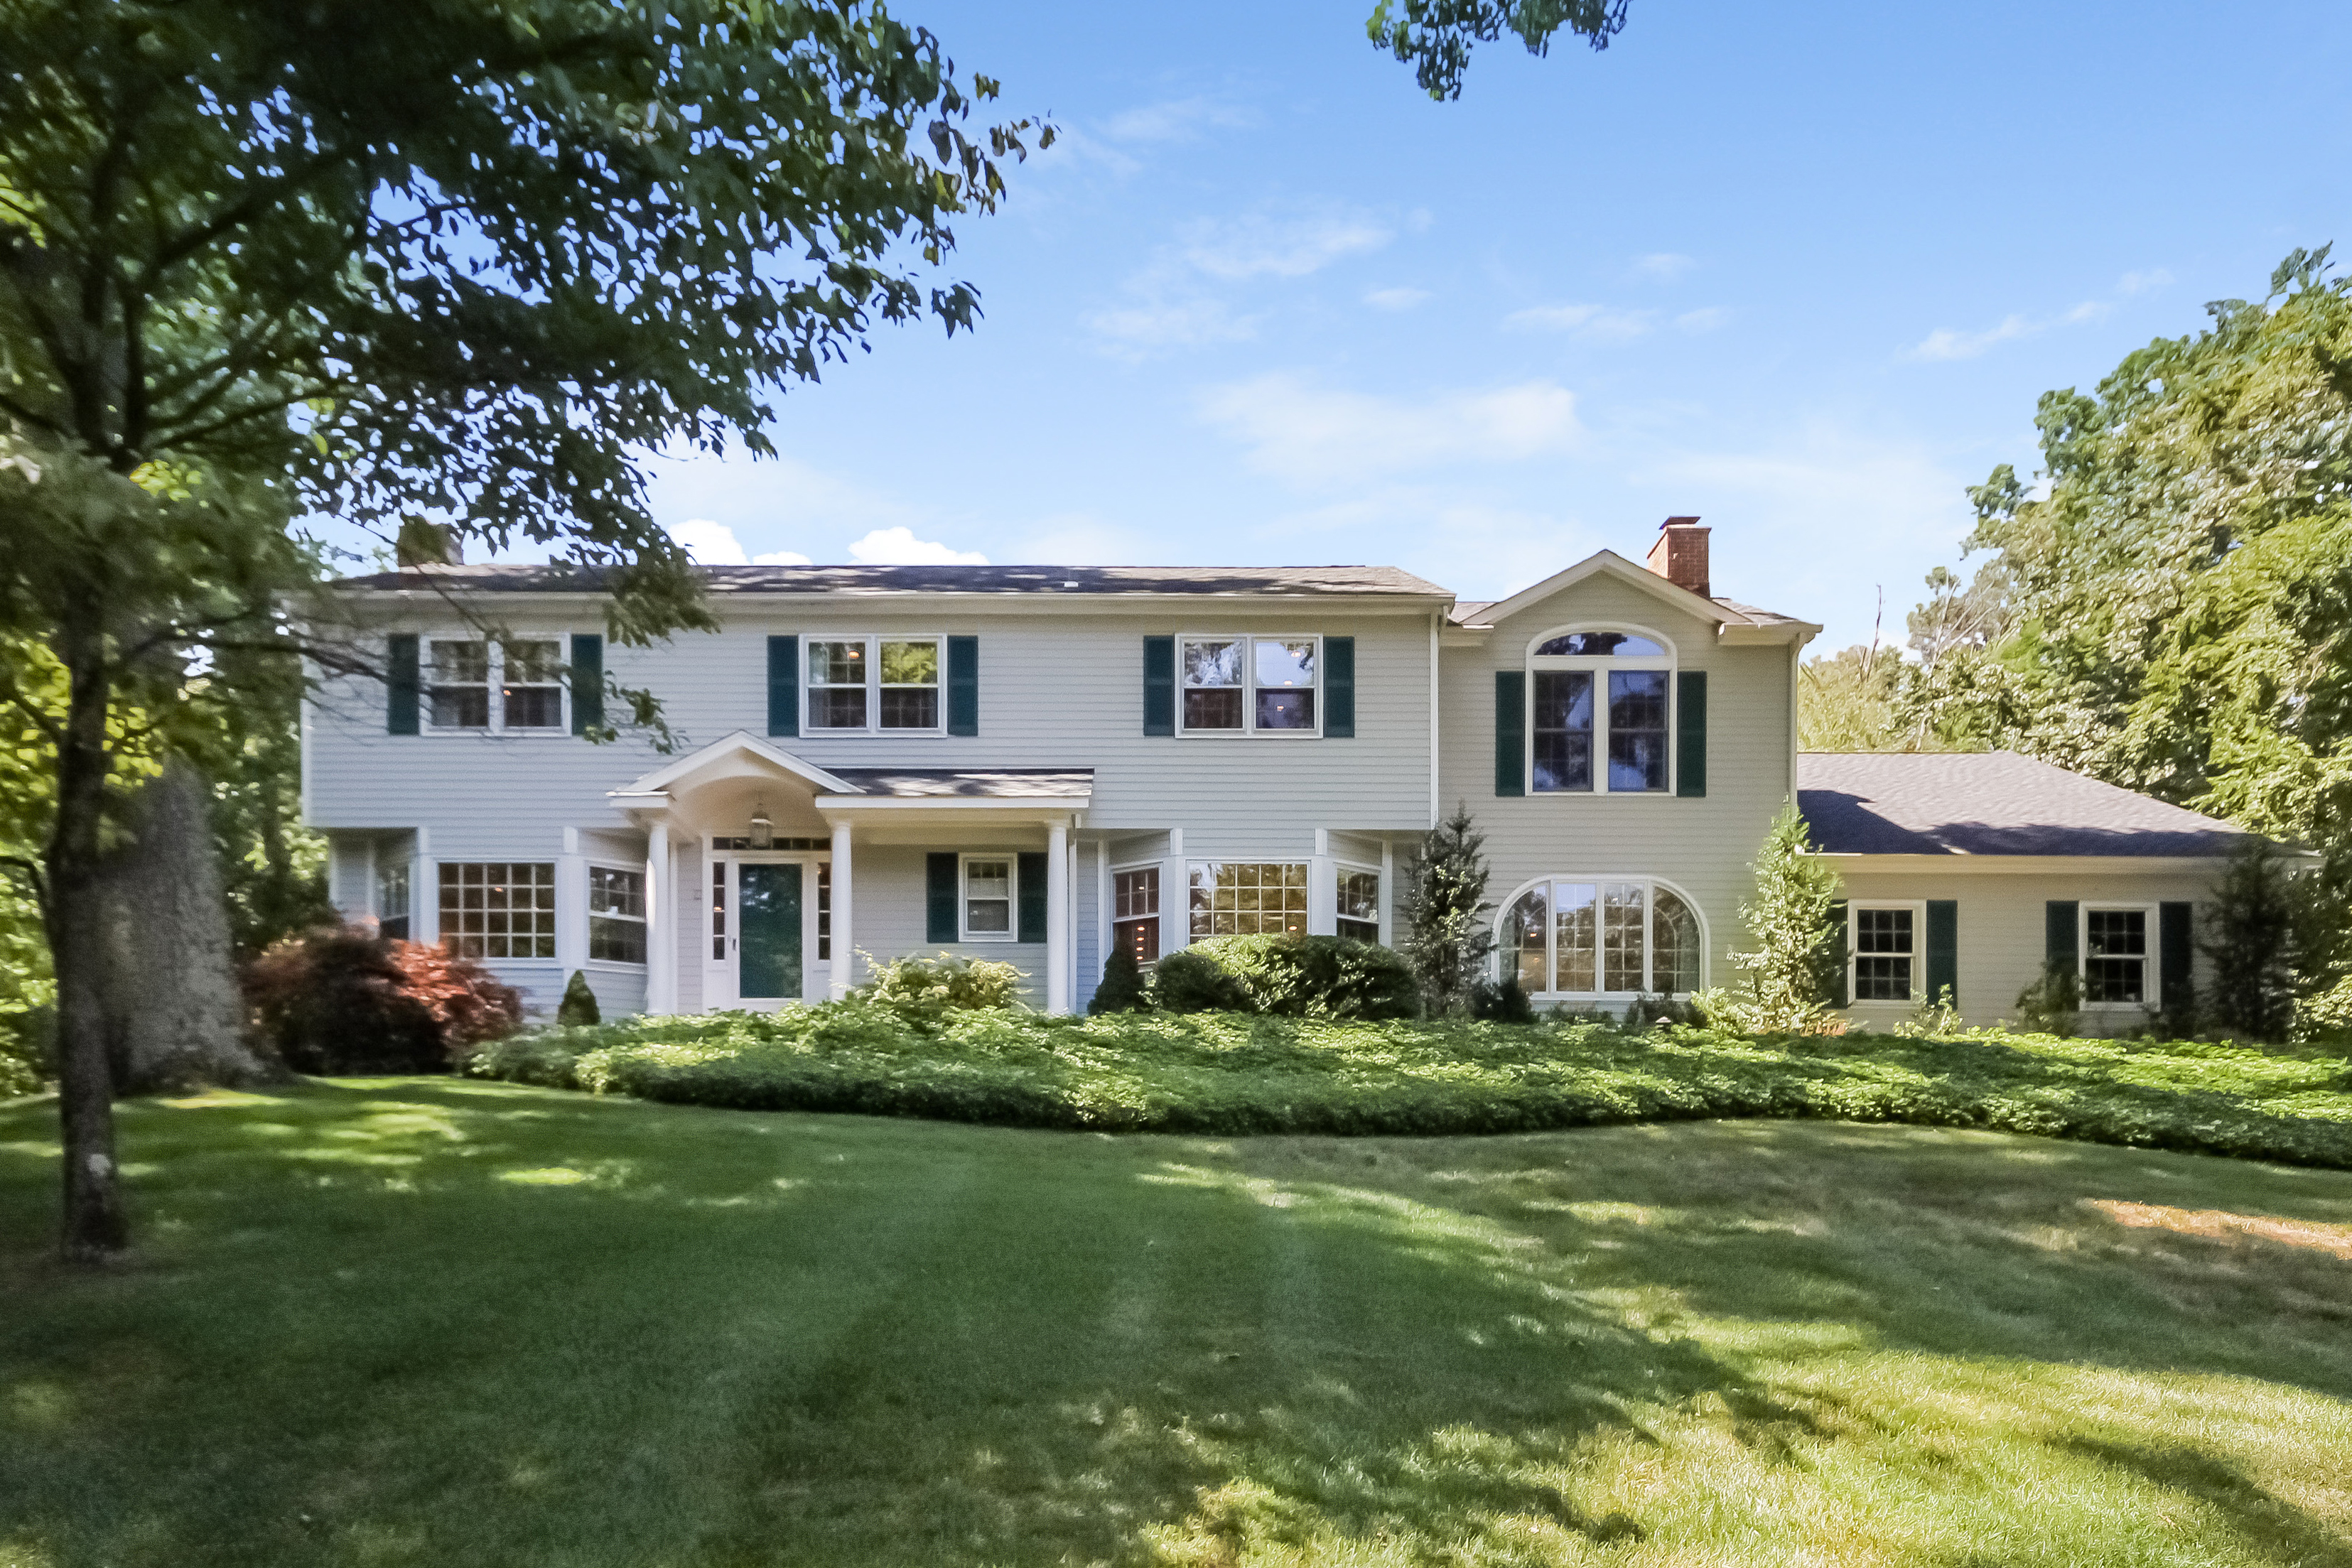 Single Family Home for Sale at 13 Berndale Drive Westport, Connecticut, 06880 United States